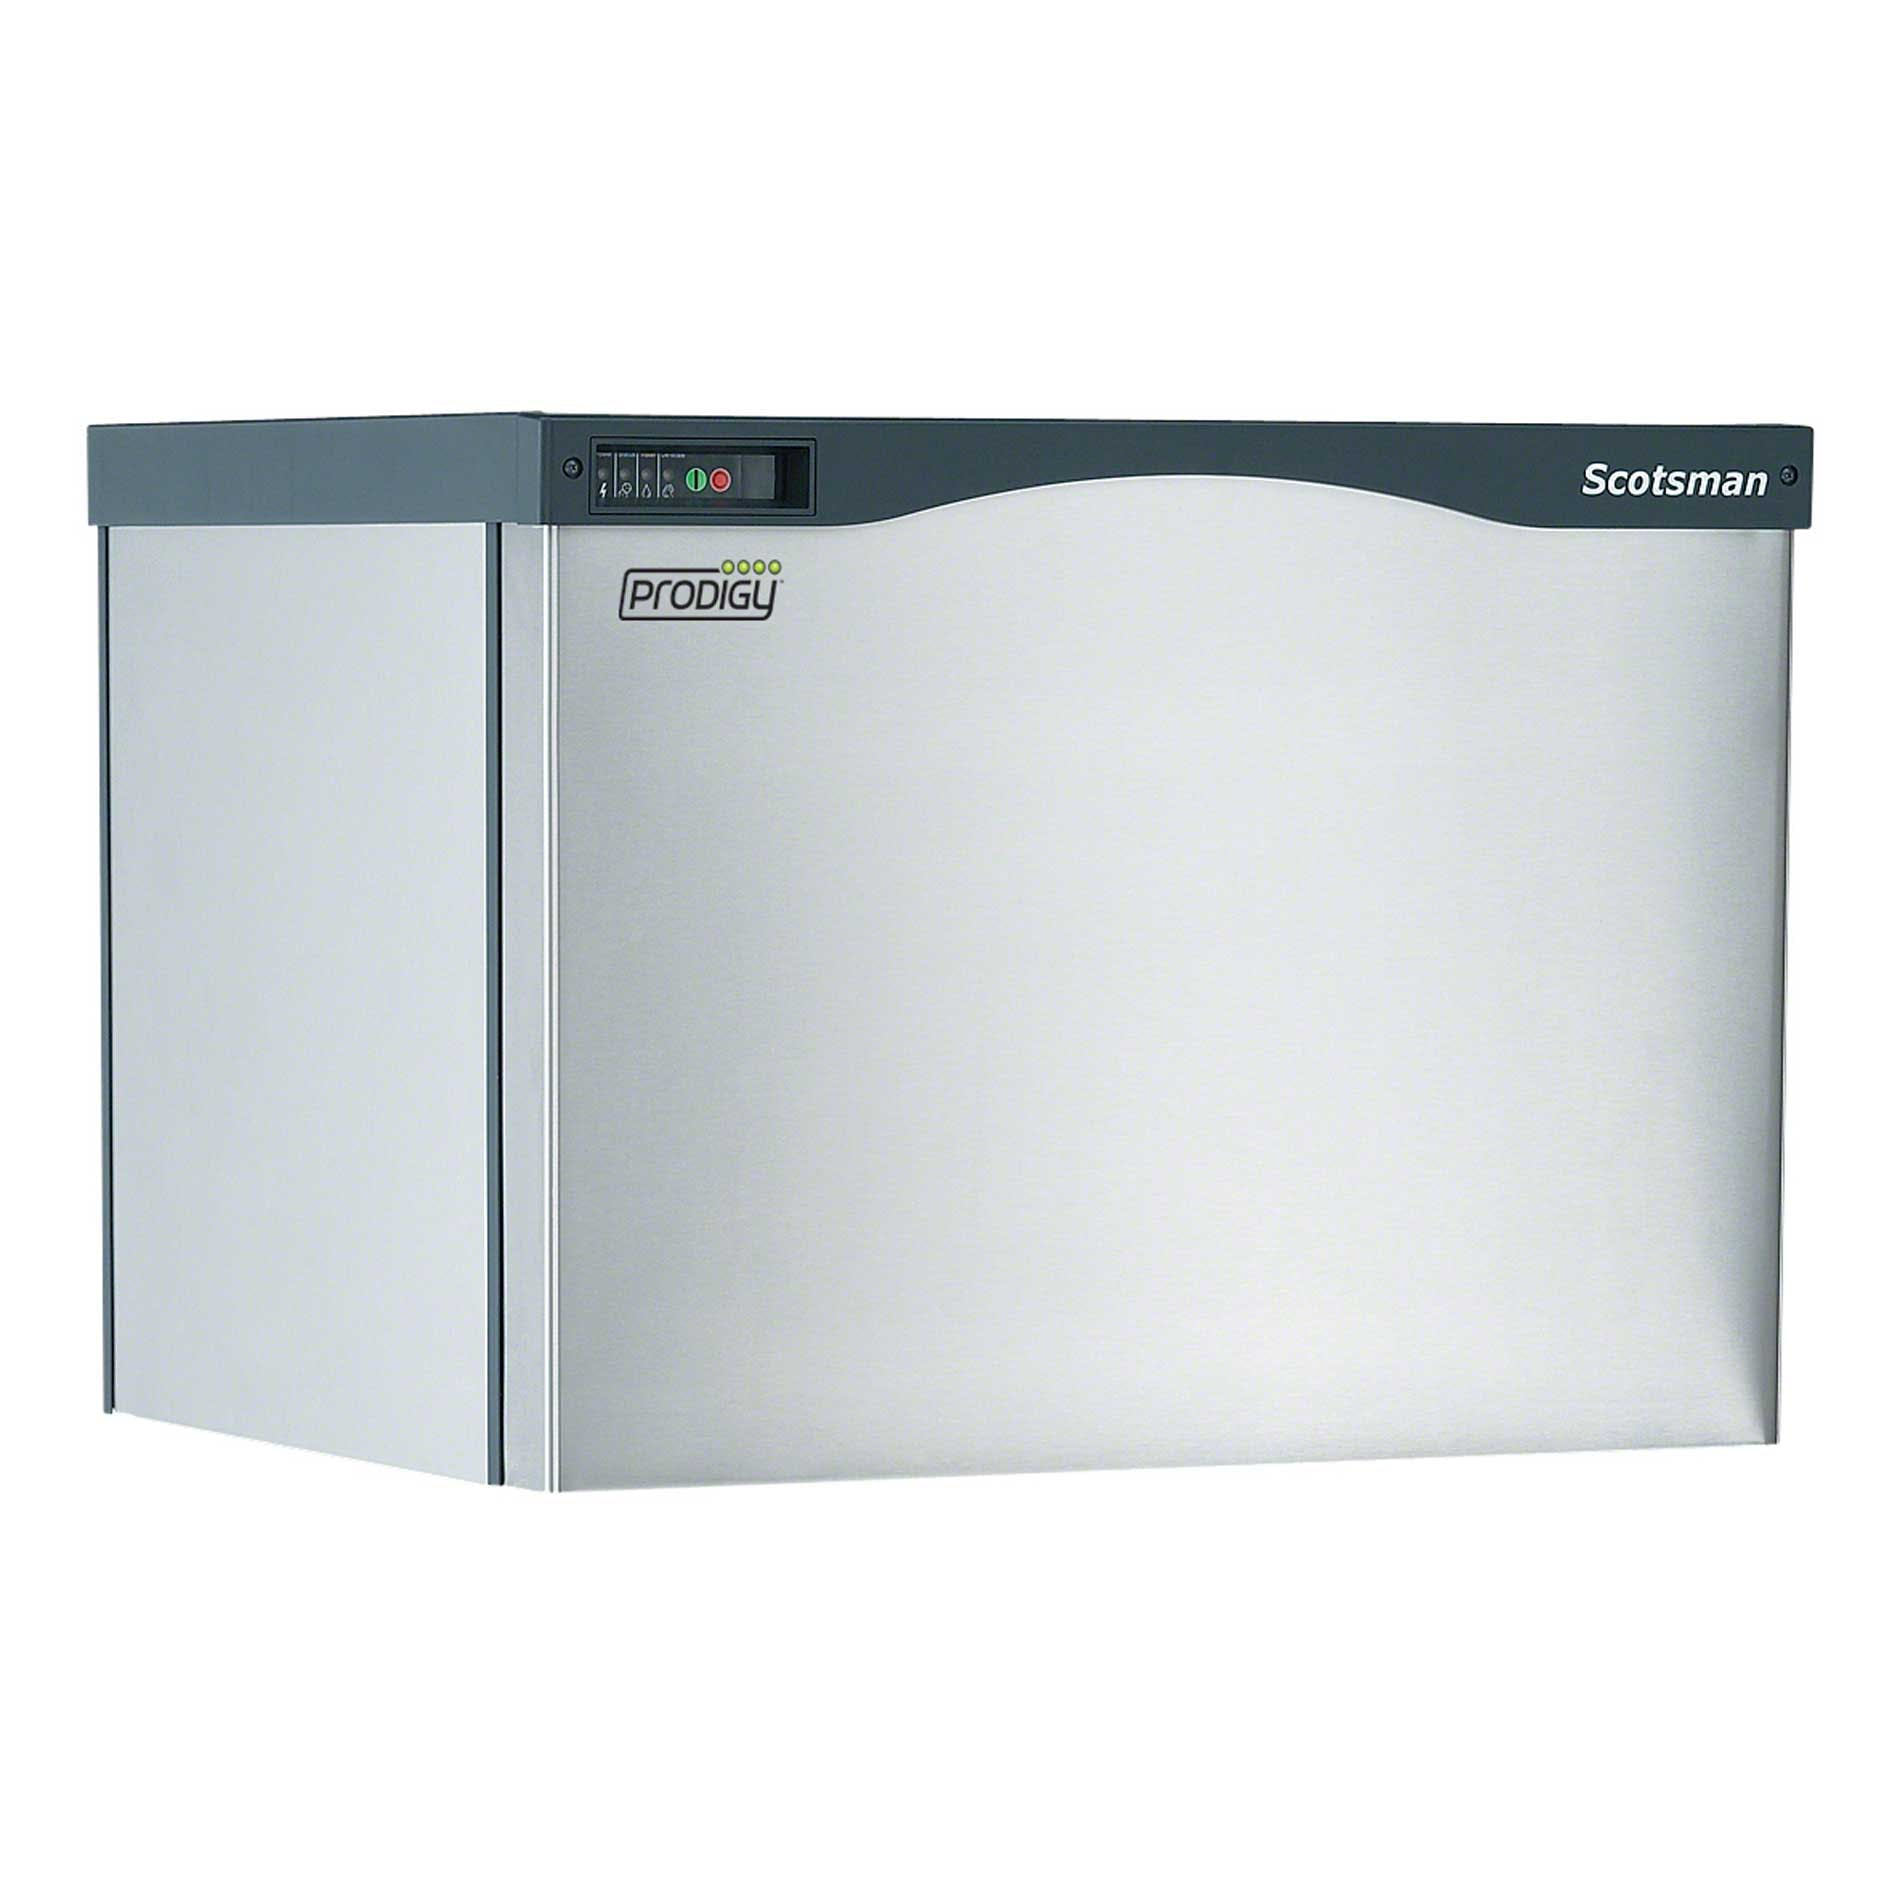 Scotsman - EH330SL-1 1400 lb Remote Cooled Modular Cube Ice Machine - Prodigy® Series Ice machine sold by Food Service Warehouse